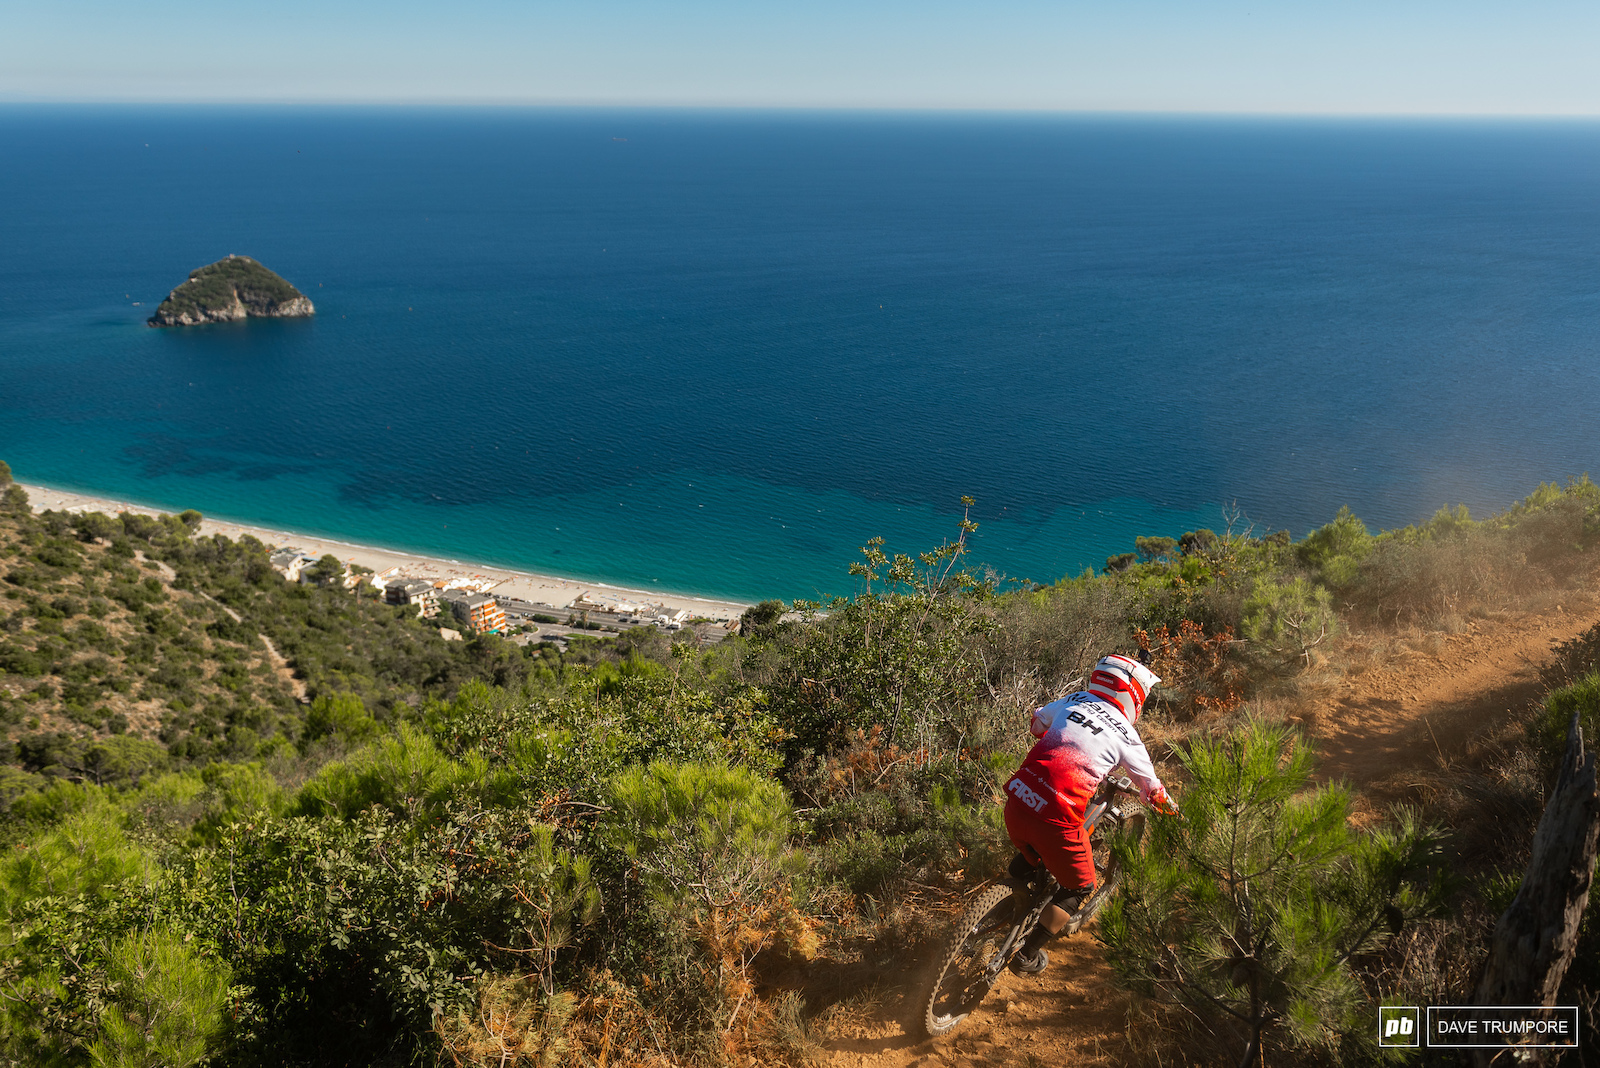 Melanie Pugin navigates a narrow ridge on Stage 3 where riders will struggle not to be distracted by the beautiful views.